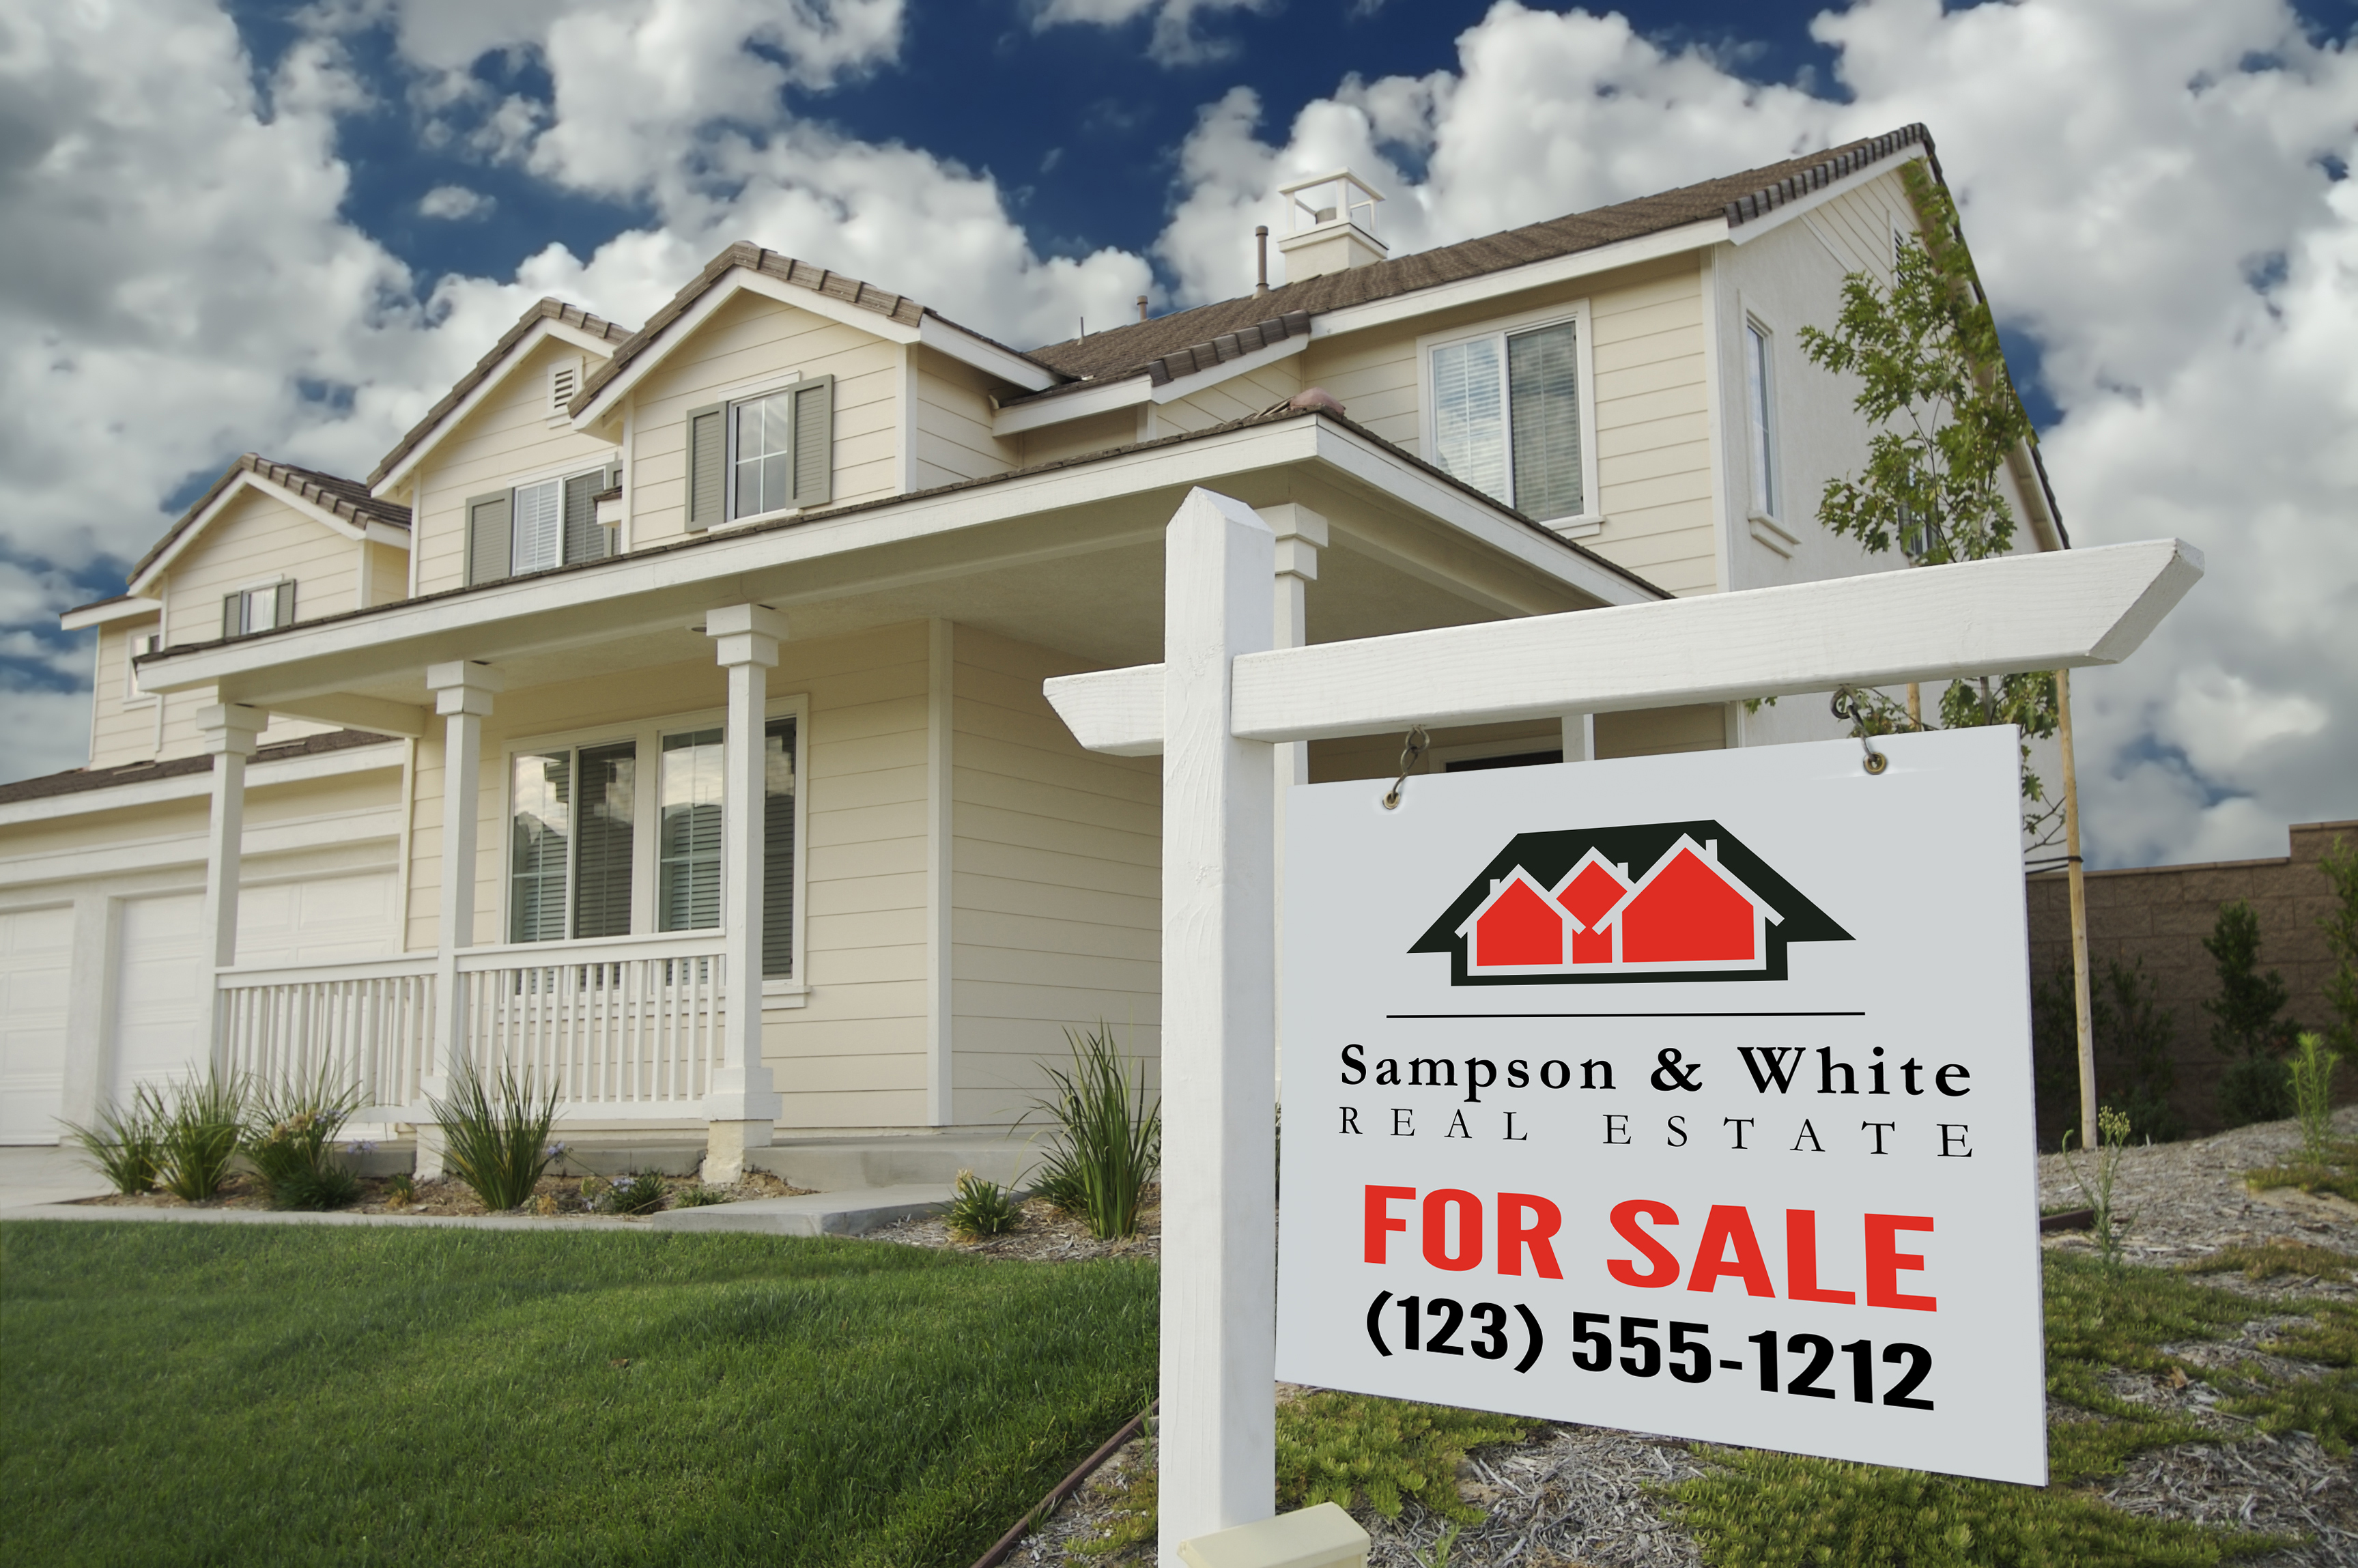 Your Home For Sale signs should generate leads for you, not for listing portals.